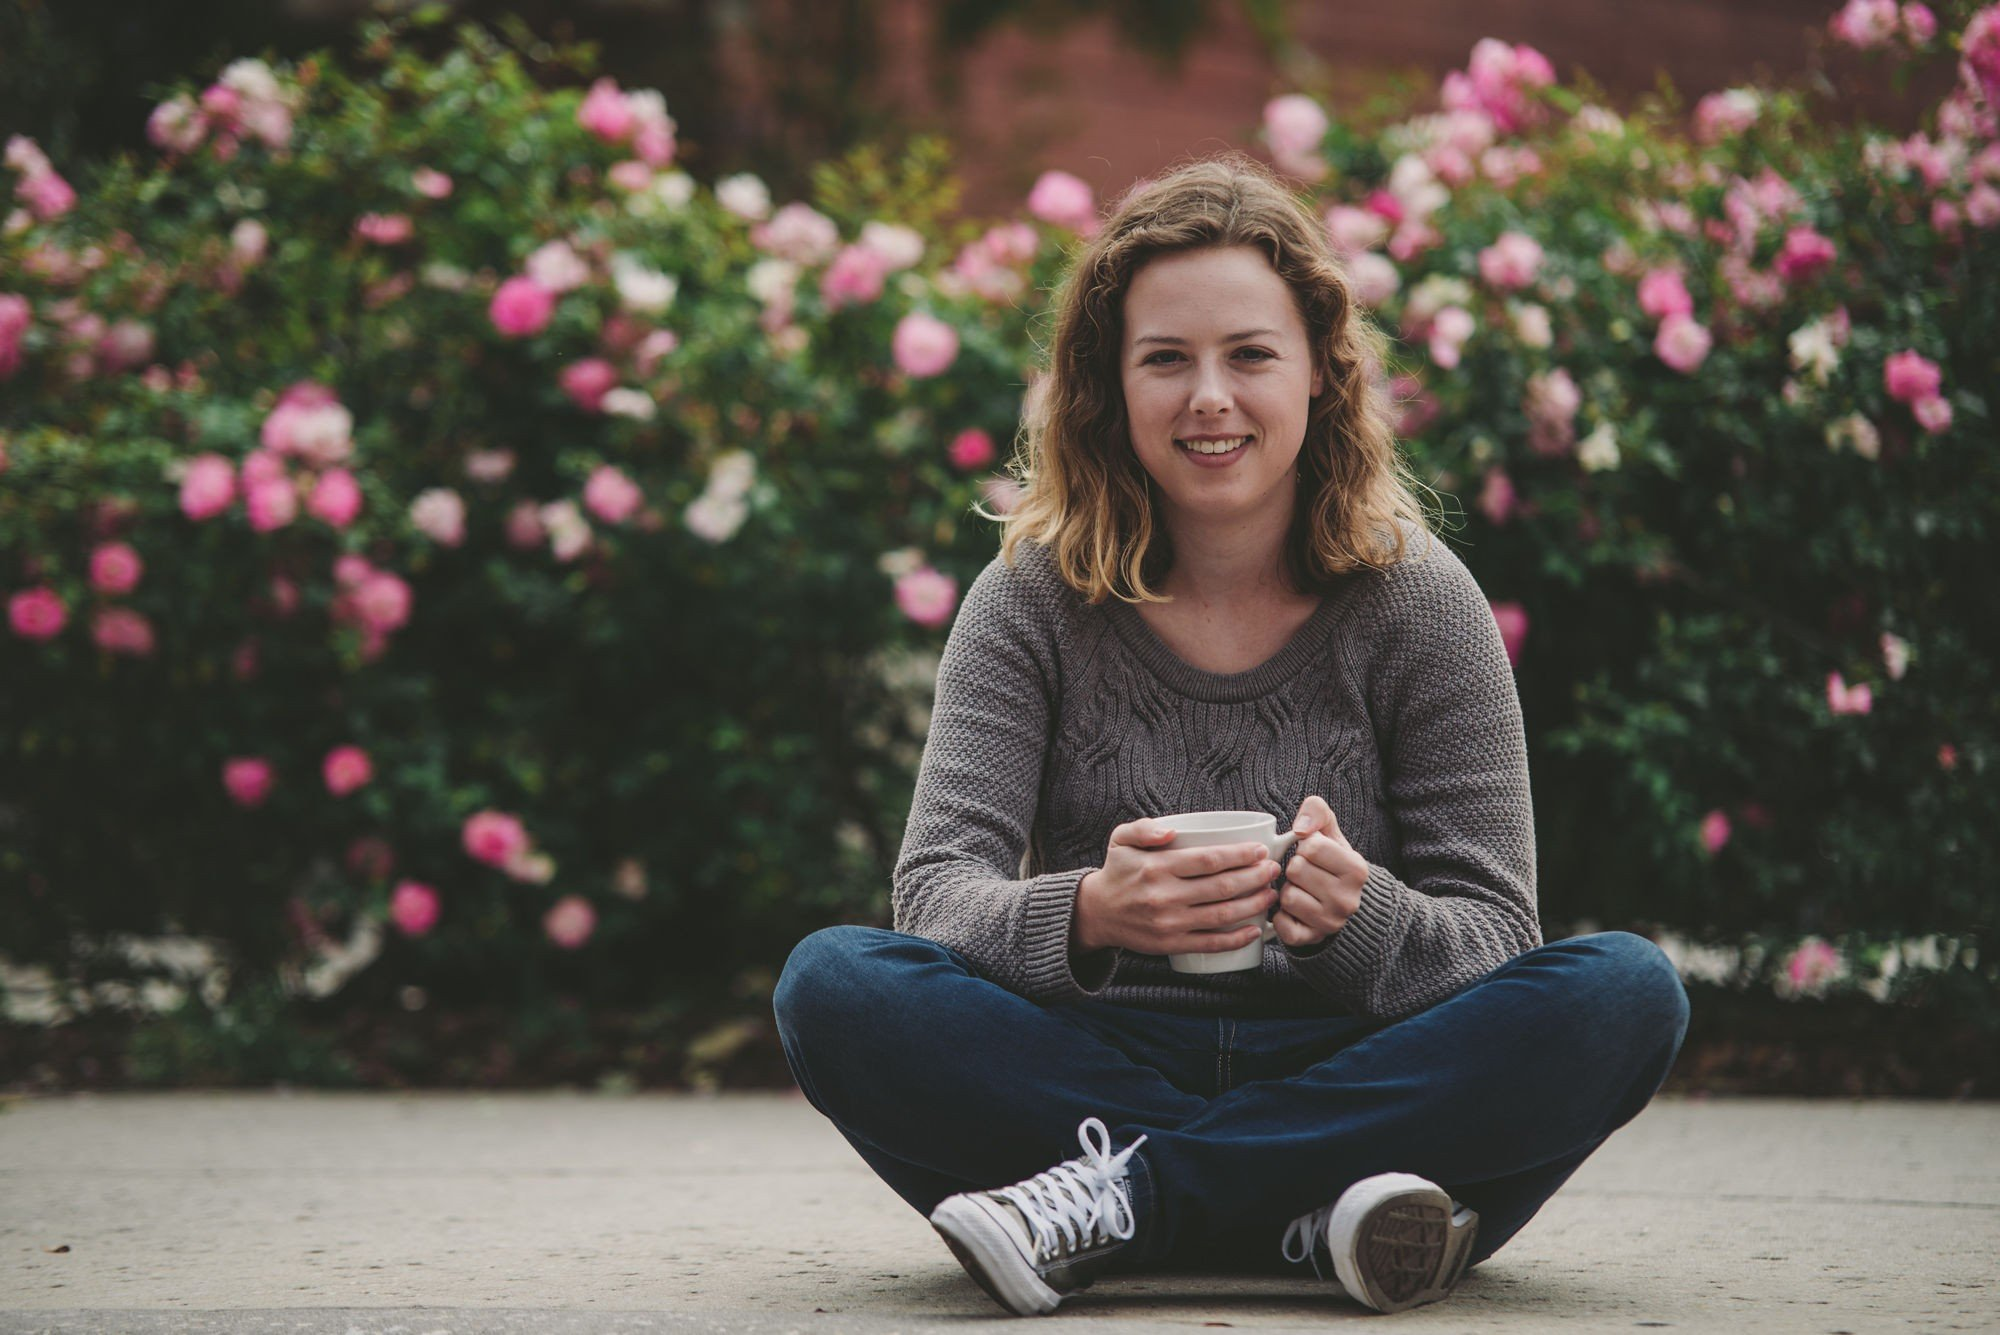 A photograph of Elizabeth Geren conversationally sitting down with a cup of coffee.